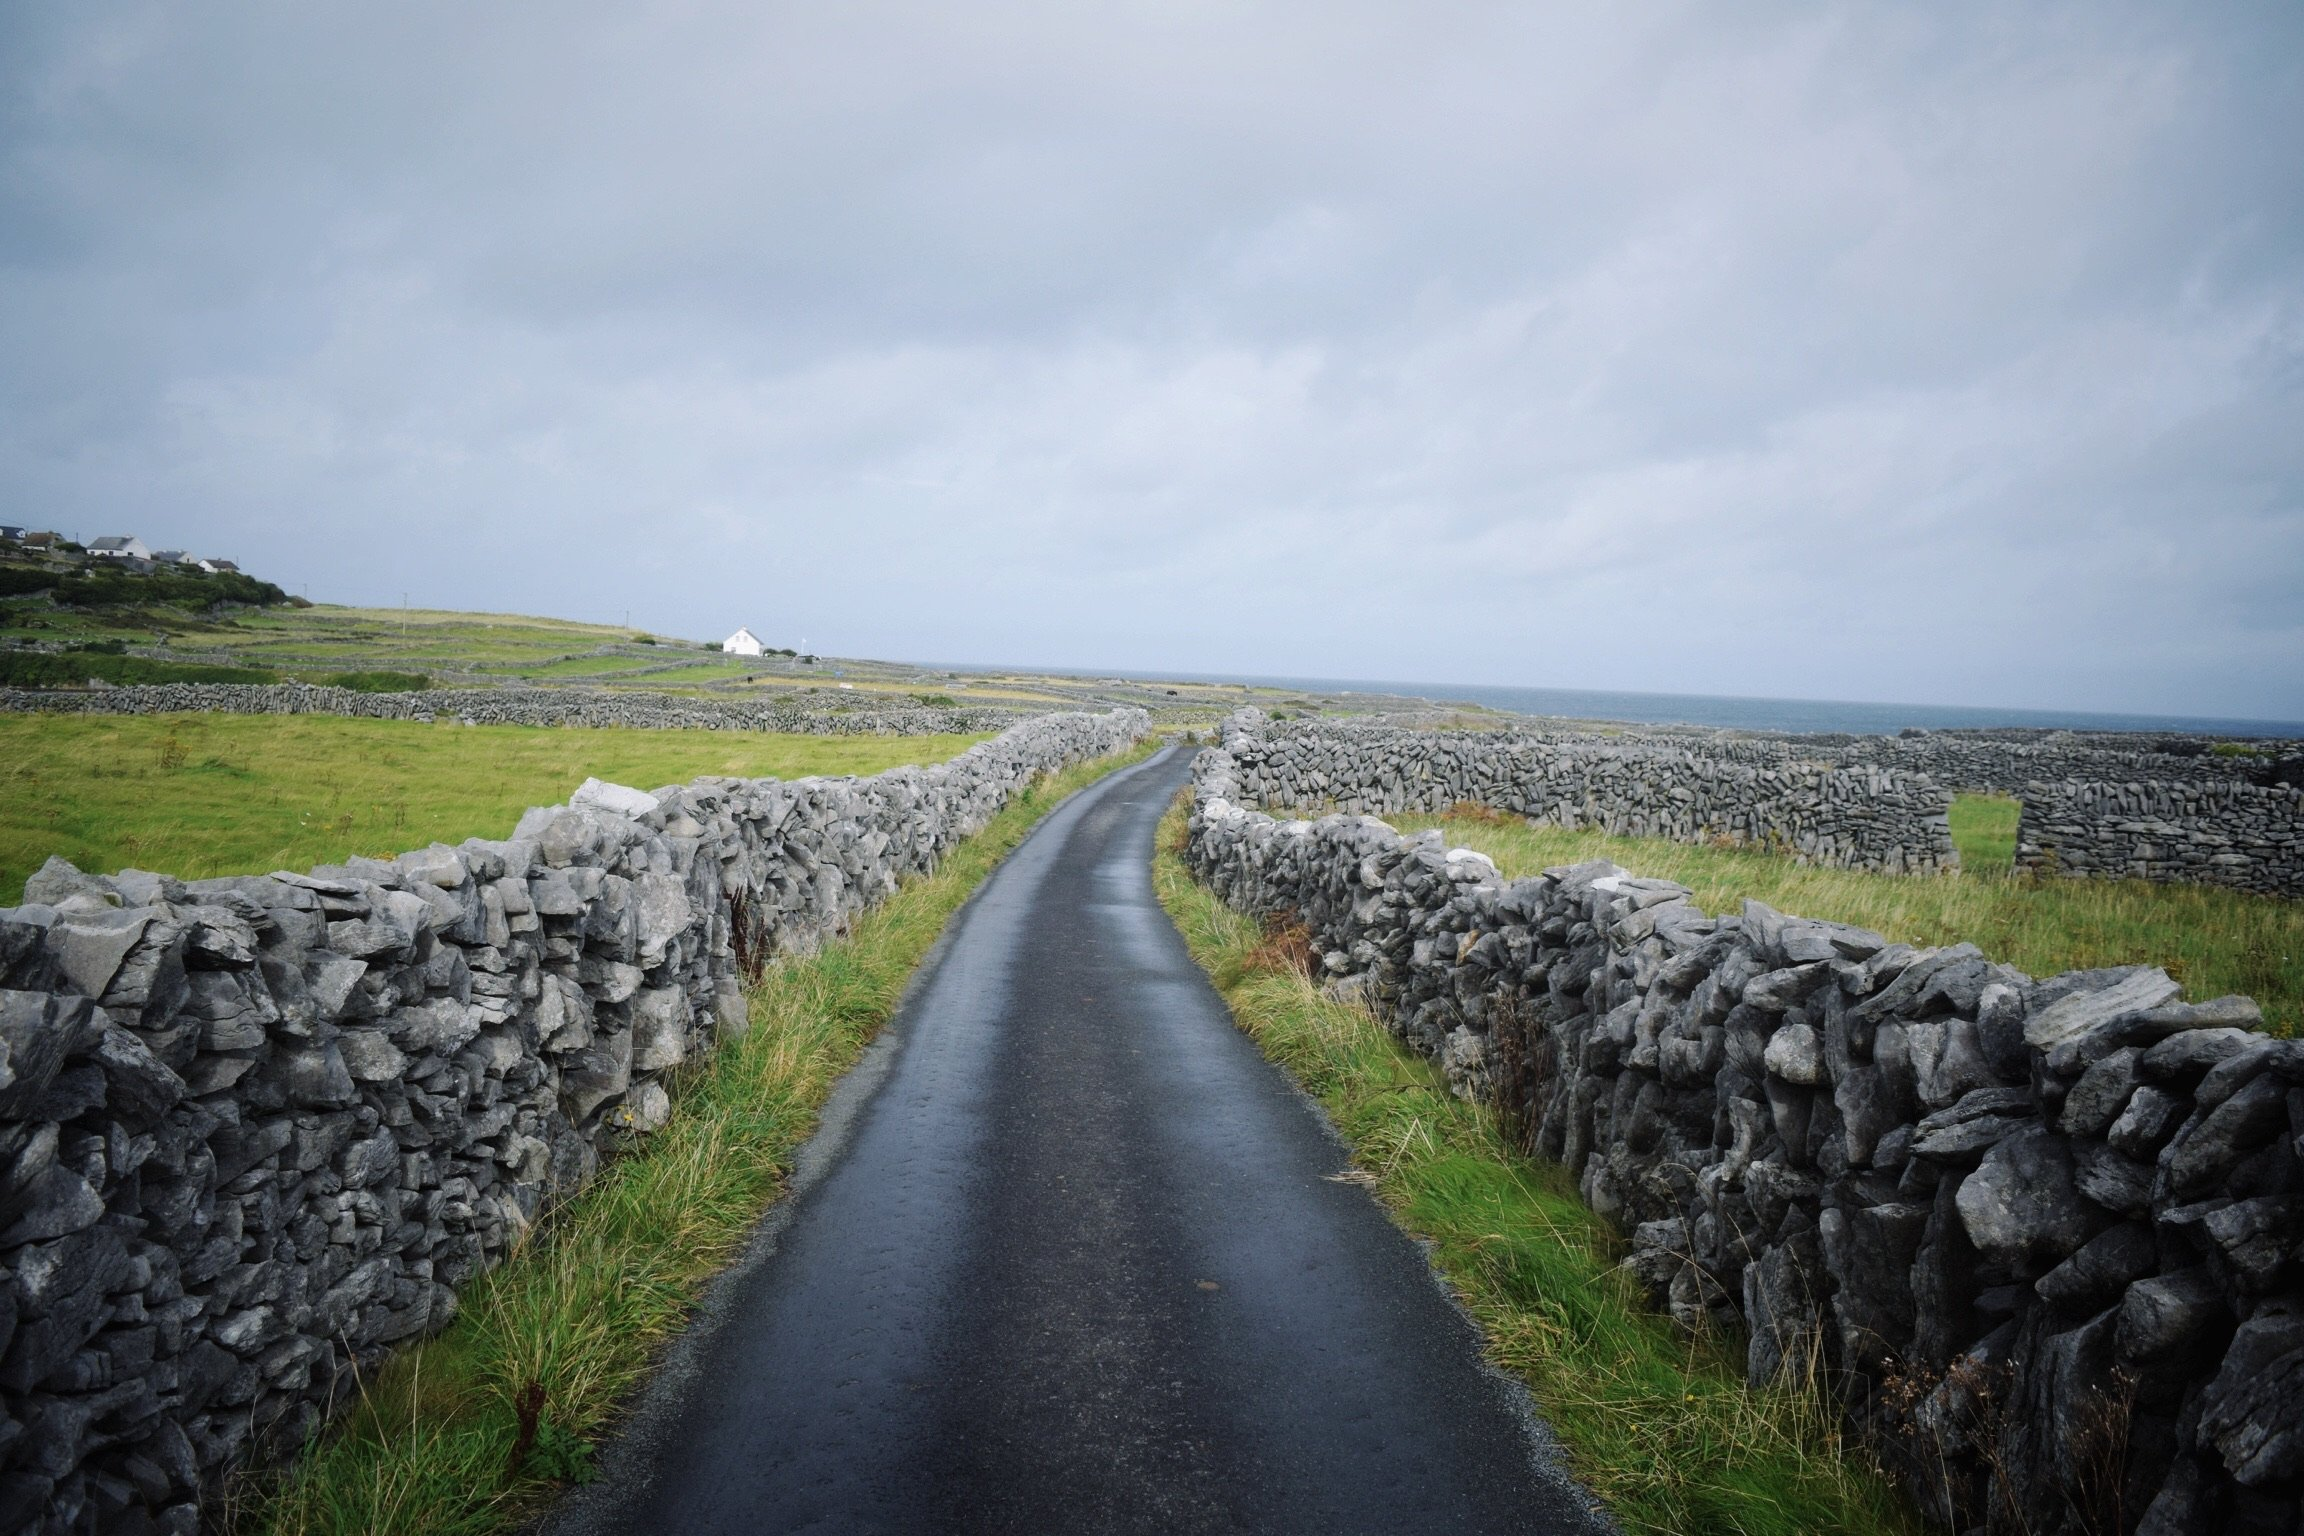 98% of the roads we travelled on outside of Dublin looked like this one: narrow, unmarked midline, and bordered by stone walls. The other 2% were like this but on hills with blind curves.